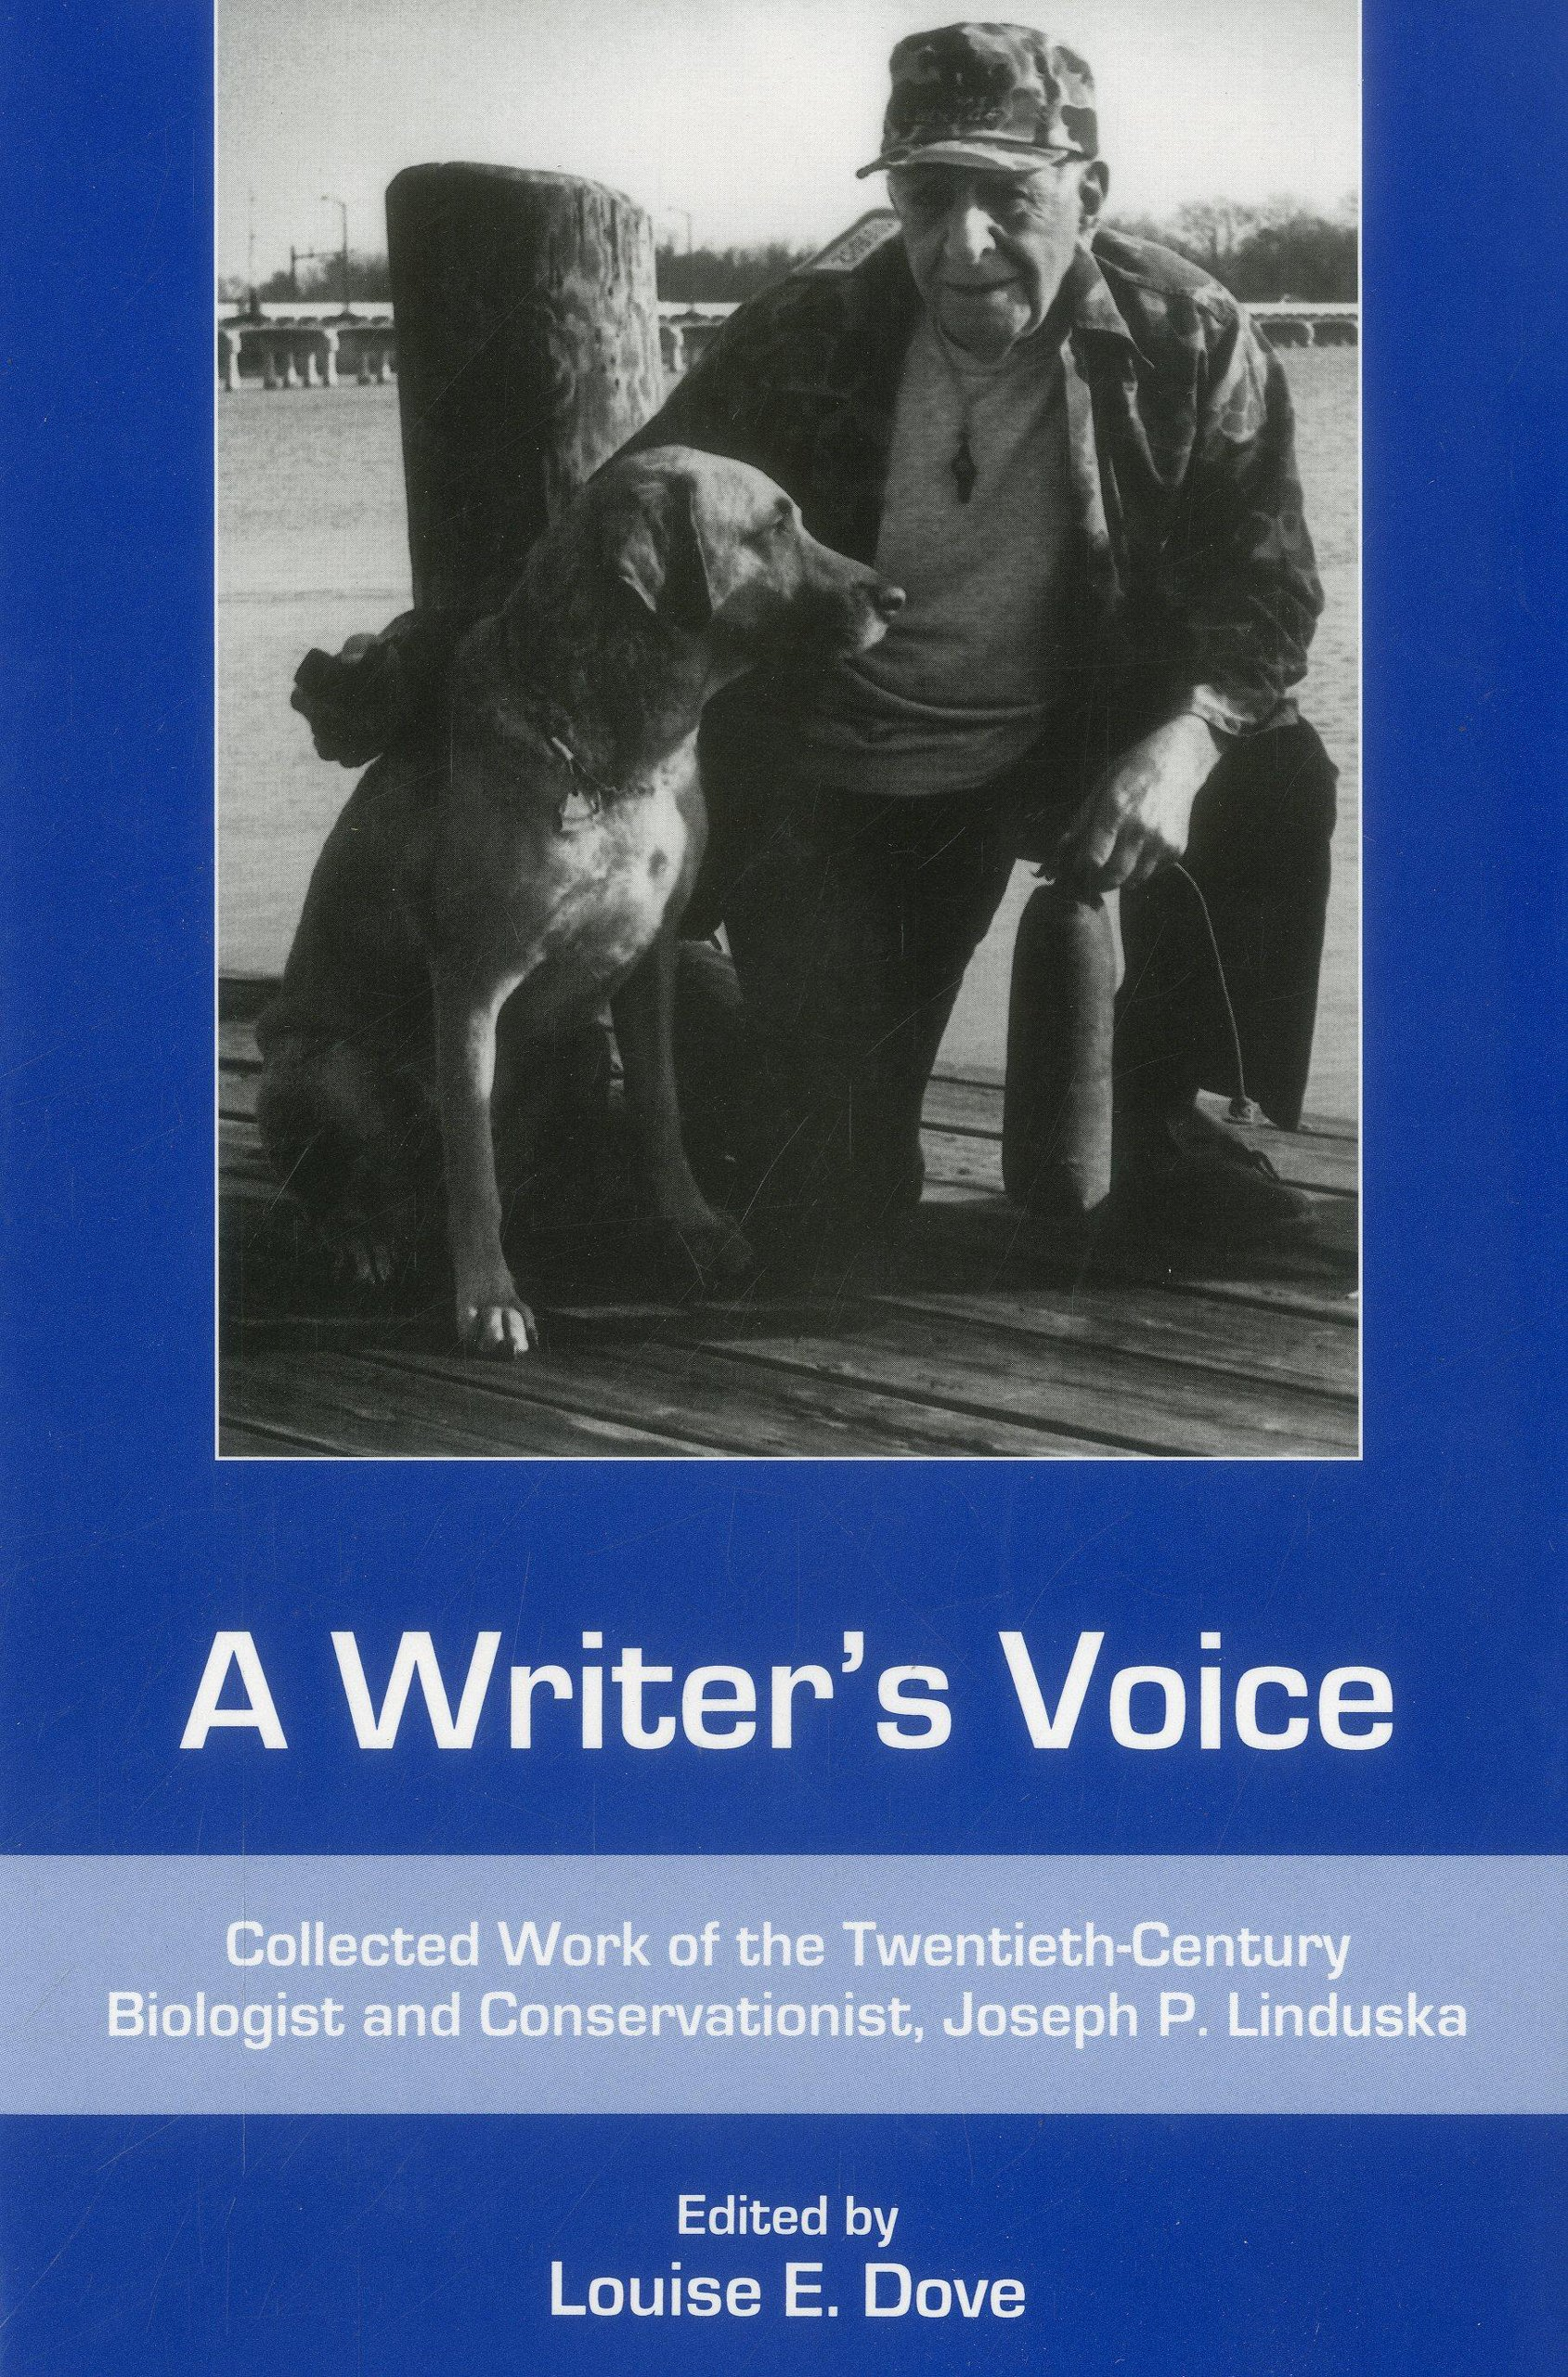 A Writer's Voice: Collected Work of the Twentieth-century Biologist and Conservationist, Joseph P. Linduska (Cultural Studies of Delaware and the Eastern Shore)